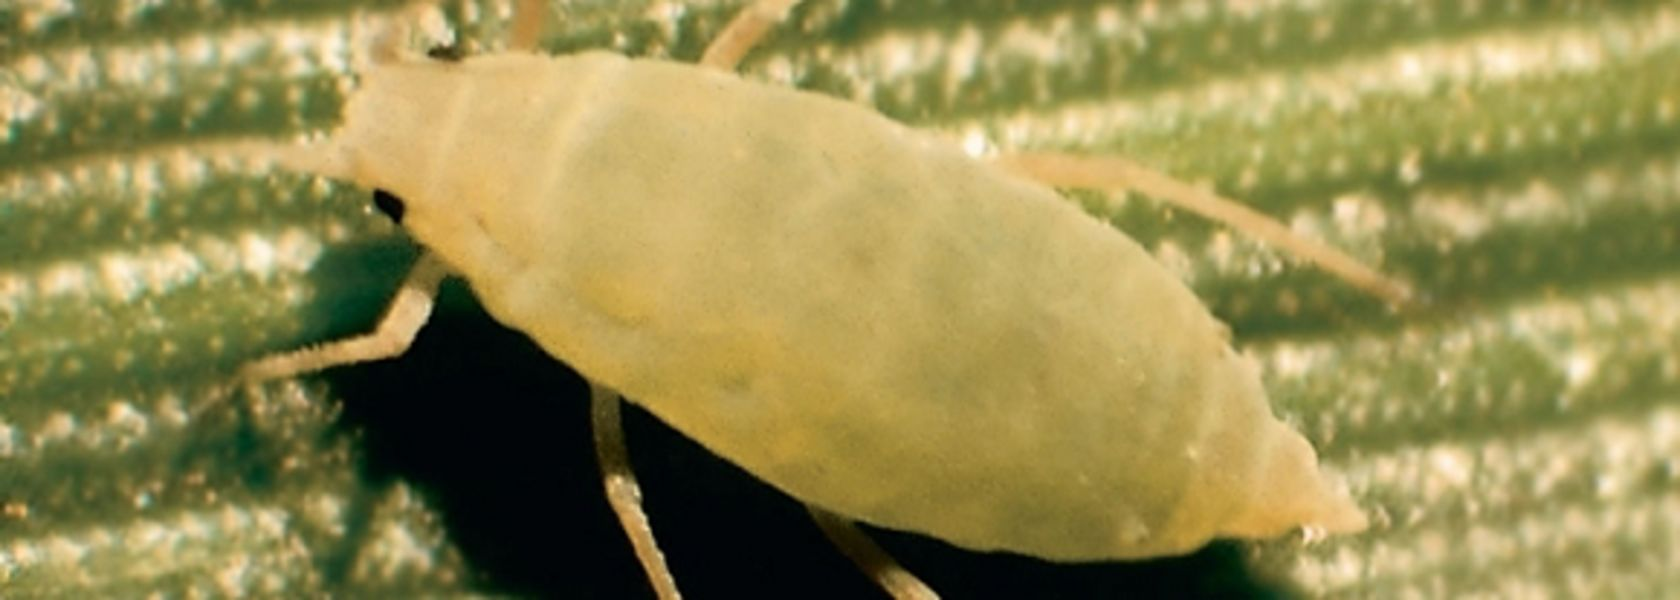 Russian Wheat Aphid moving north